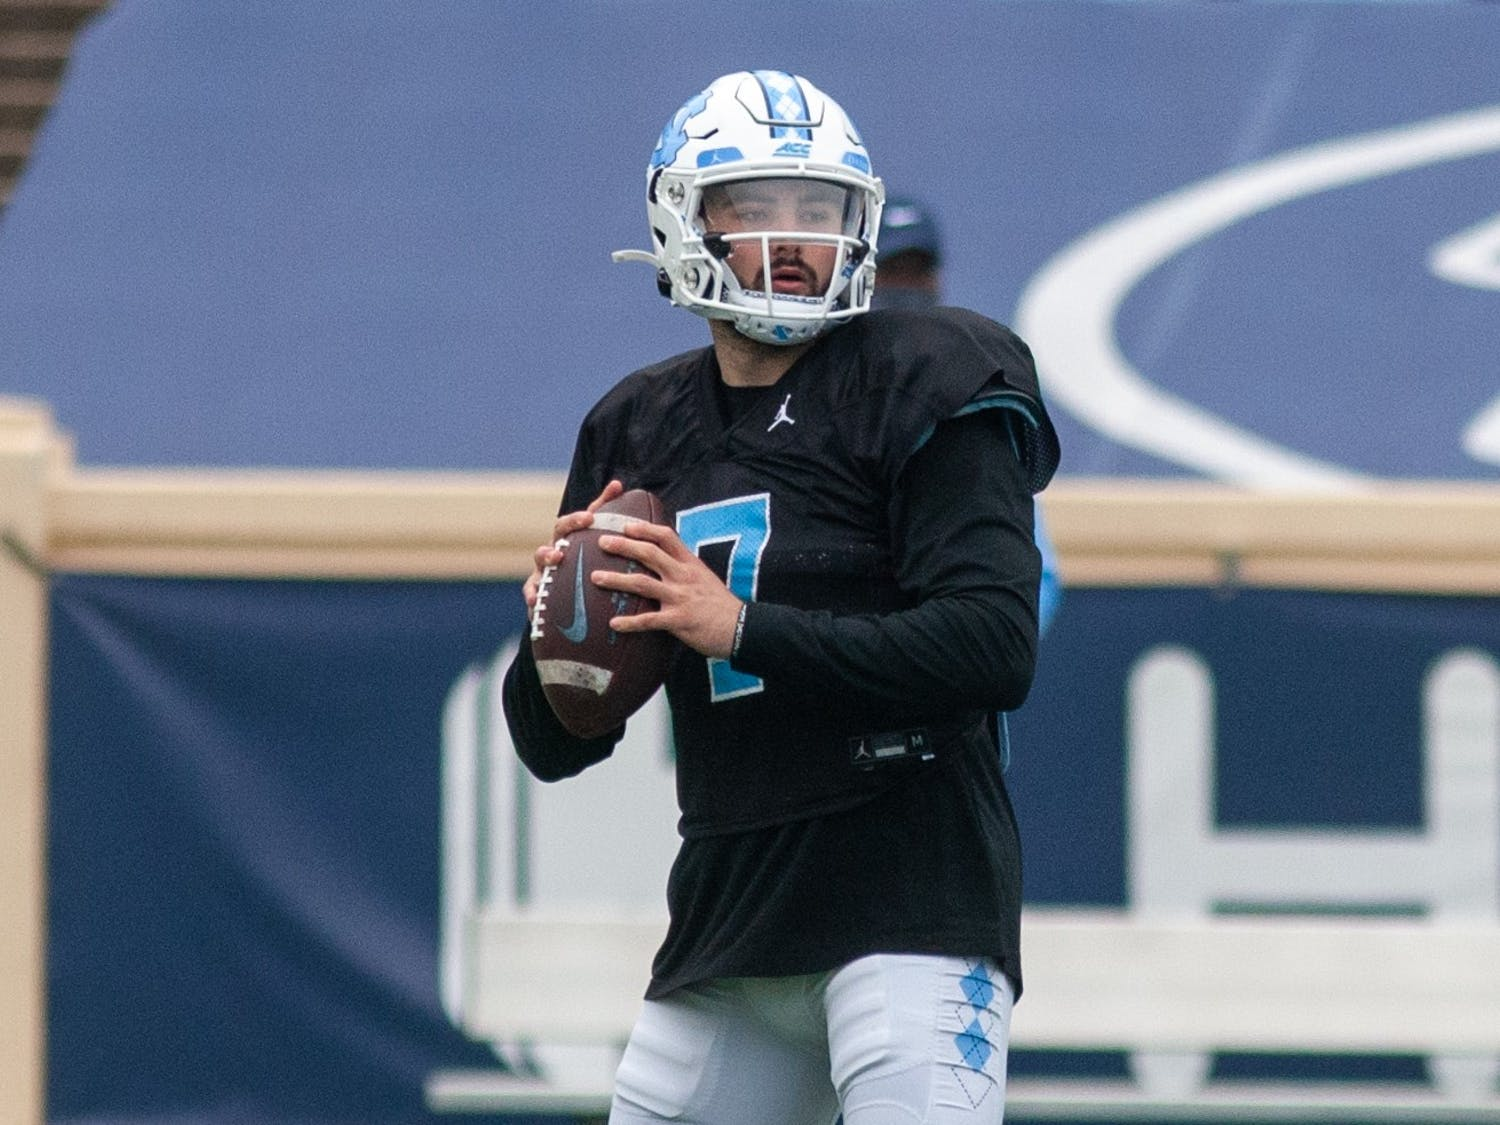 Sophomore quarterback Sam Howell (7) prepares to throw the ball at the football practice on Saturday Mar. 27, 2021 at Kenan Stadium.